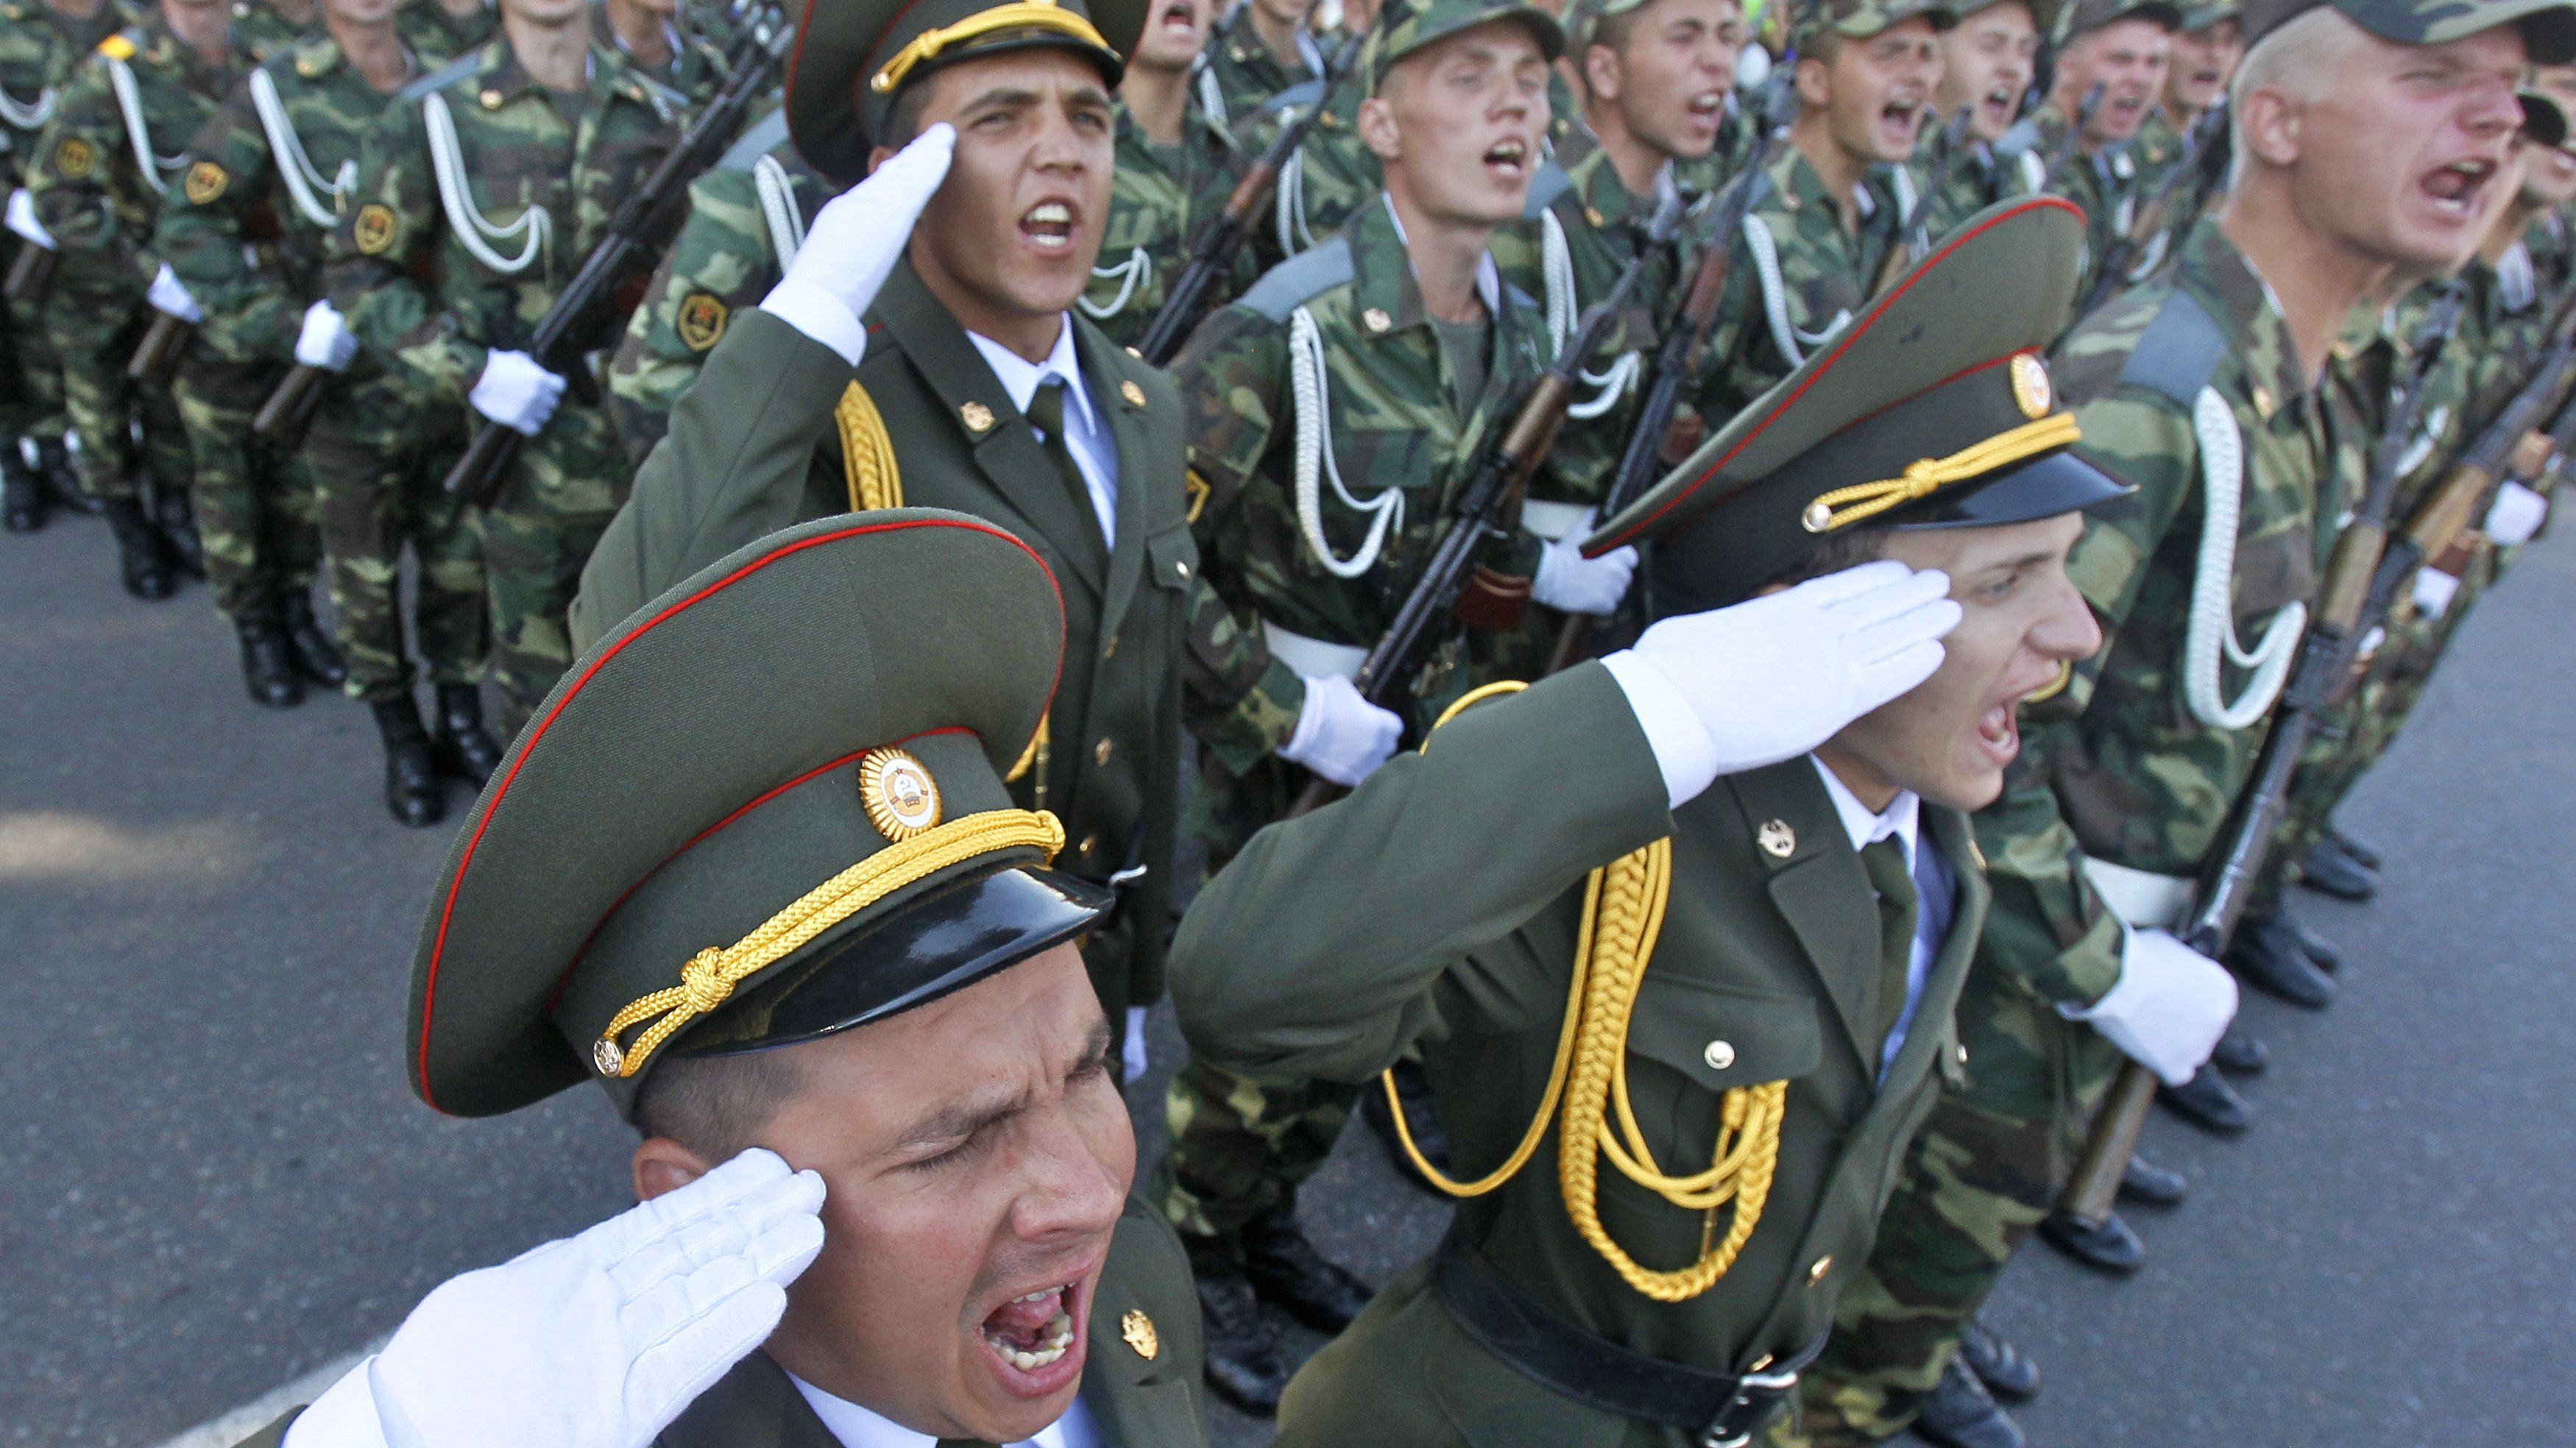 Soldiers of Moldova's self-proclaimed separatist Transnistria region take part in a military parade in Tiraspol.